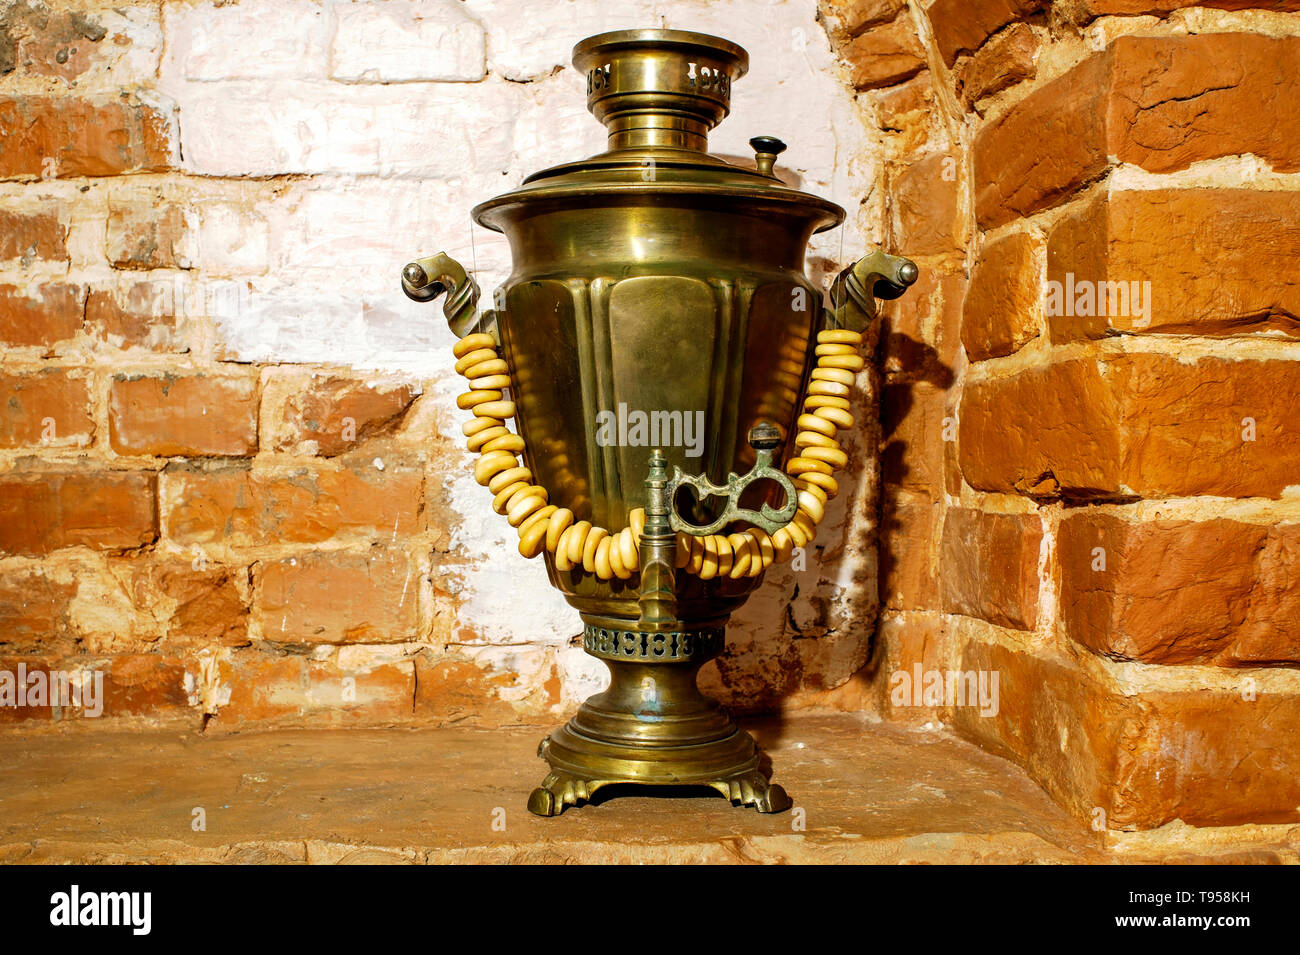 Ancient copper samovar stands in the form of decorations with lamb products on the background of the wall of the Russian red brick oven. Background, r - Stock Image